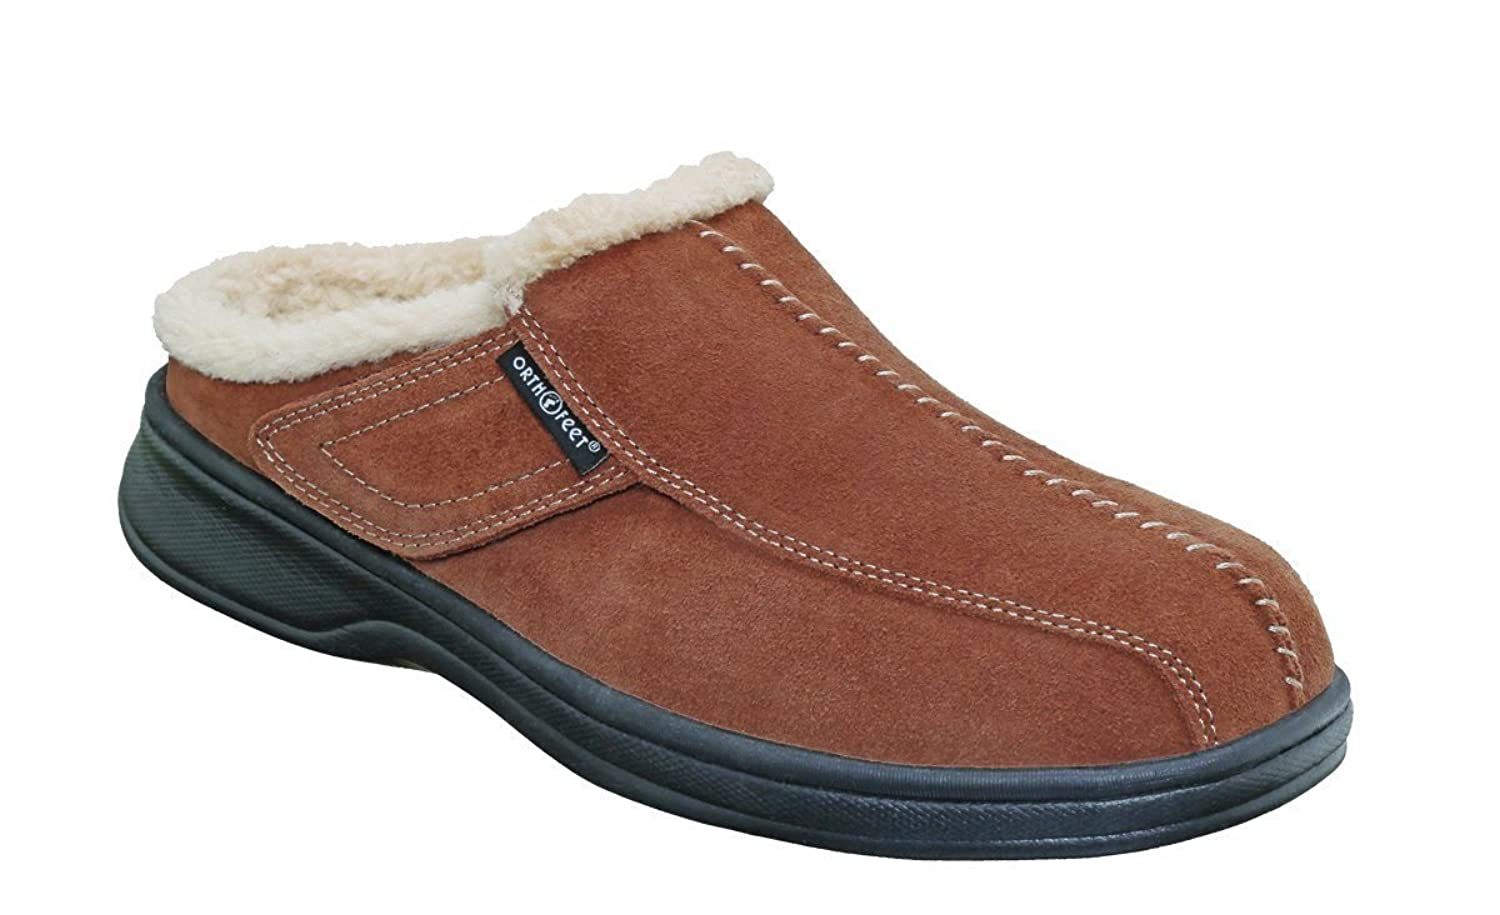 Orthofeet Most Comfortable Arch Support Asheville Diabetic Mens Orthopedic Brown Leather Slippers B008BAL94C 12 2E US